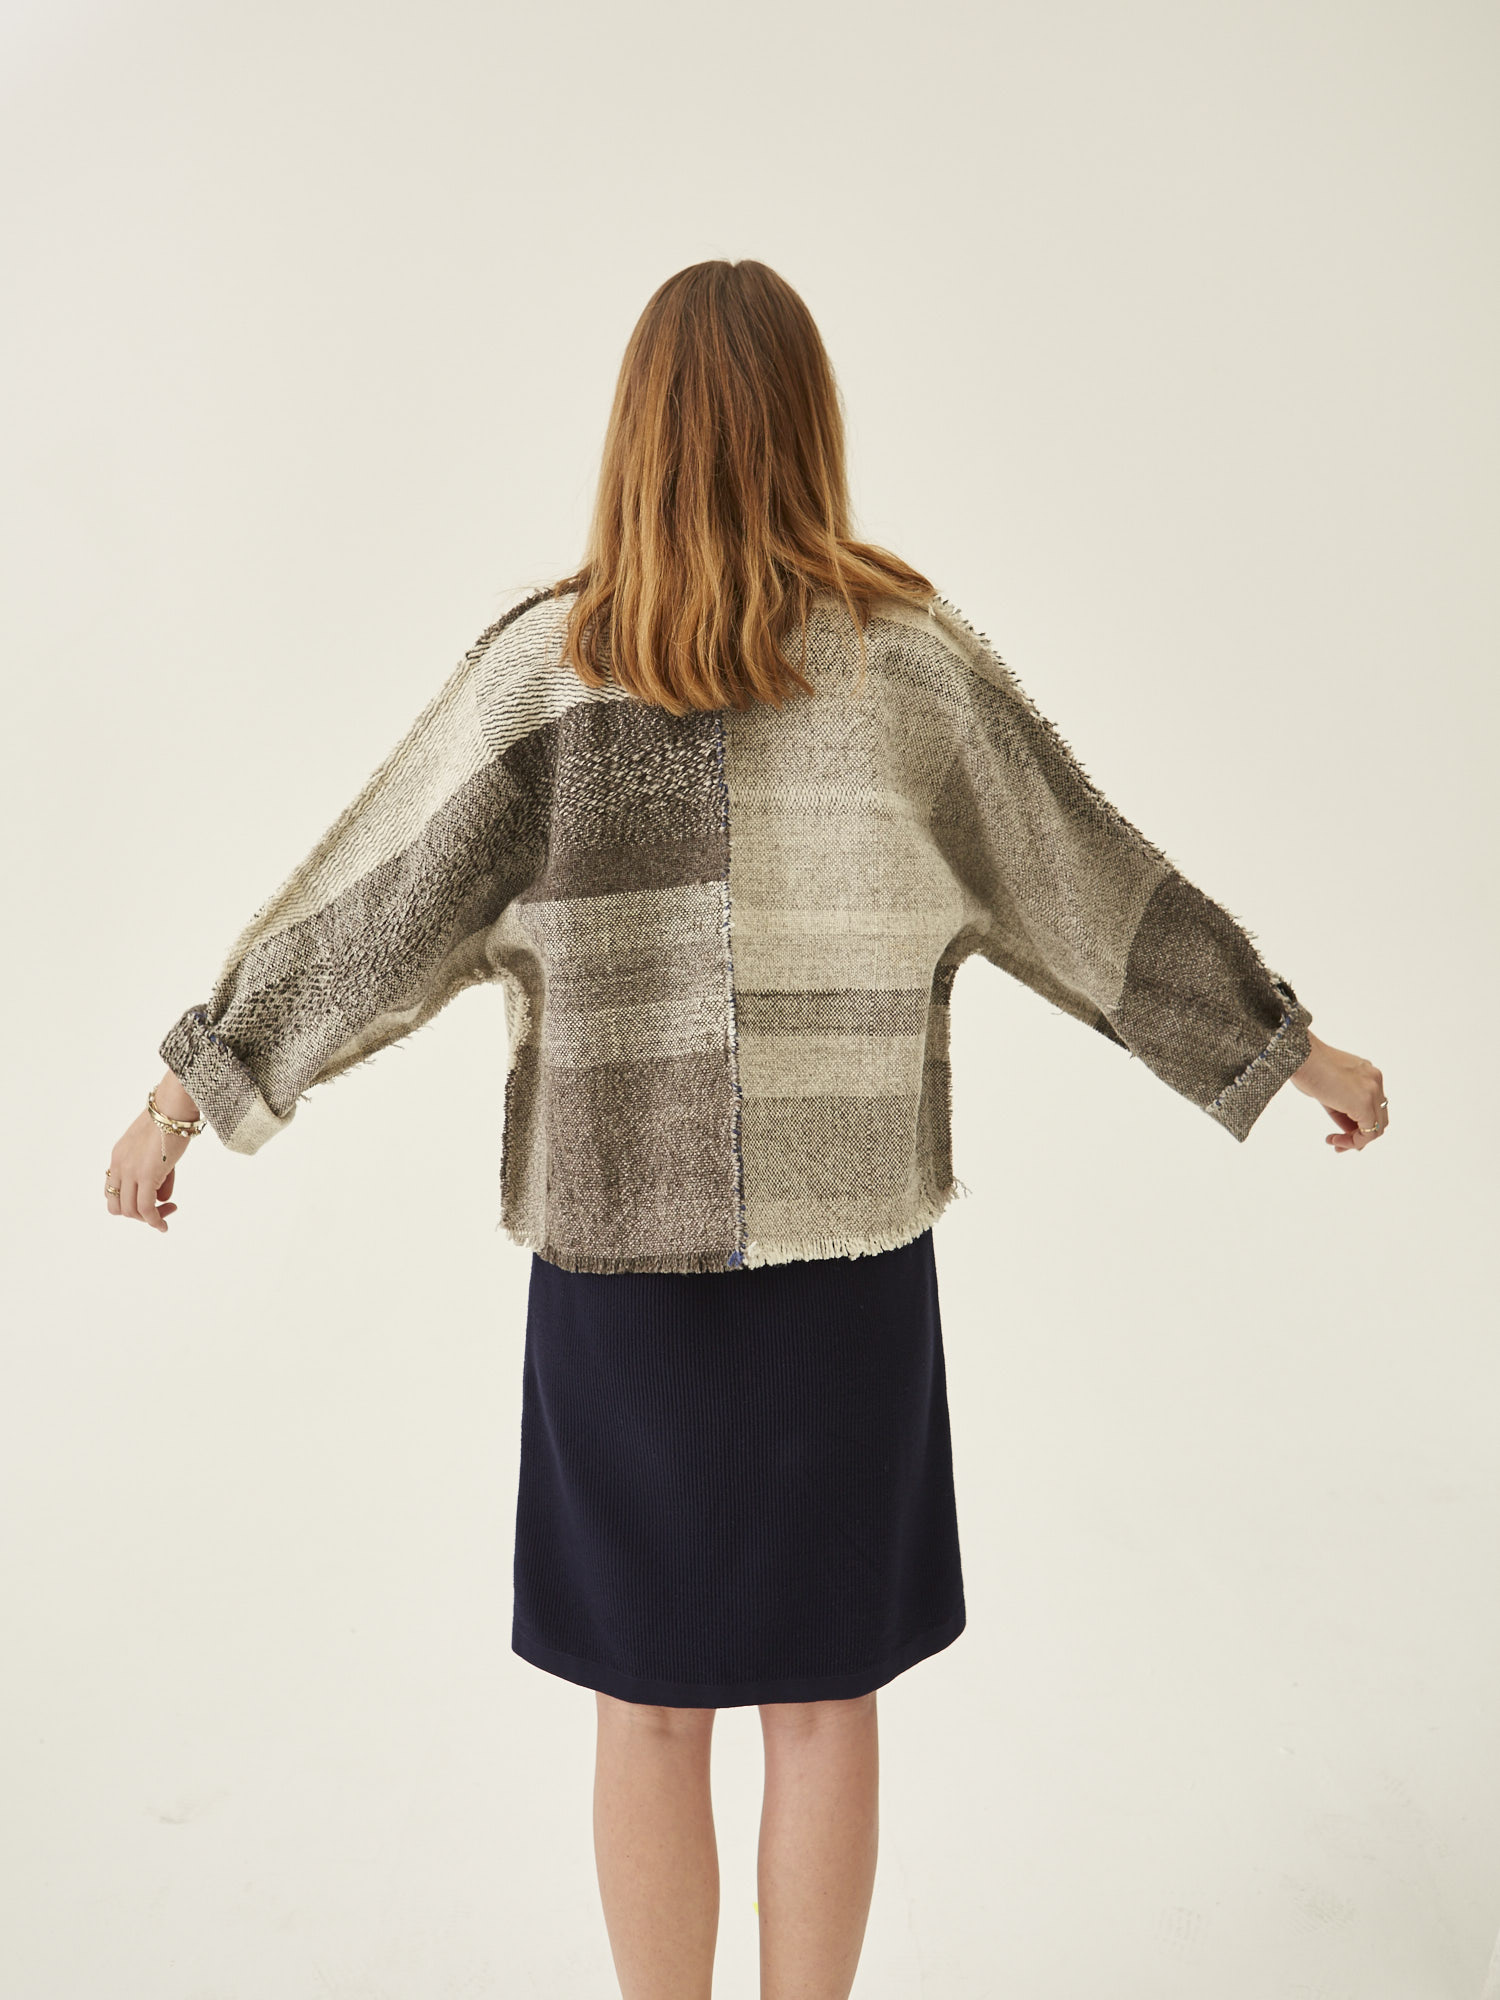 Hole & Corner Selects : Maria Sigma | Alcyone (of the Sky) Jacket